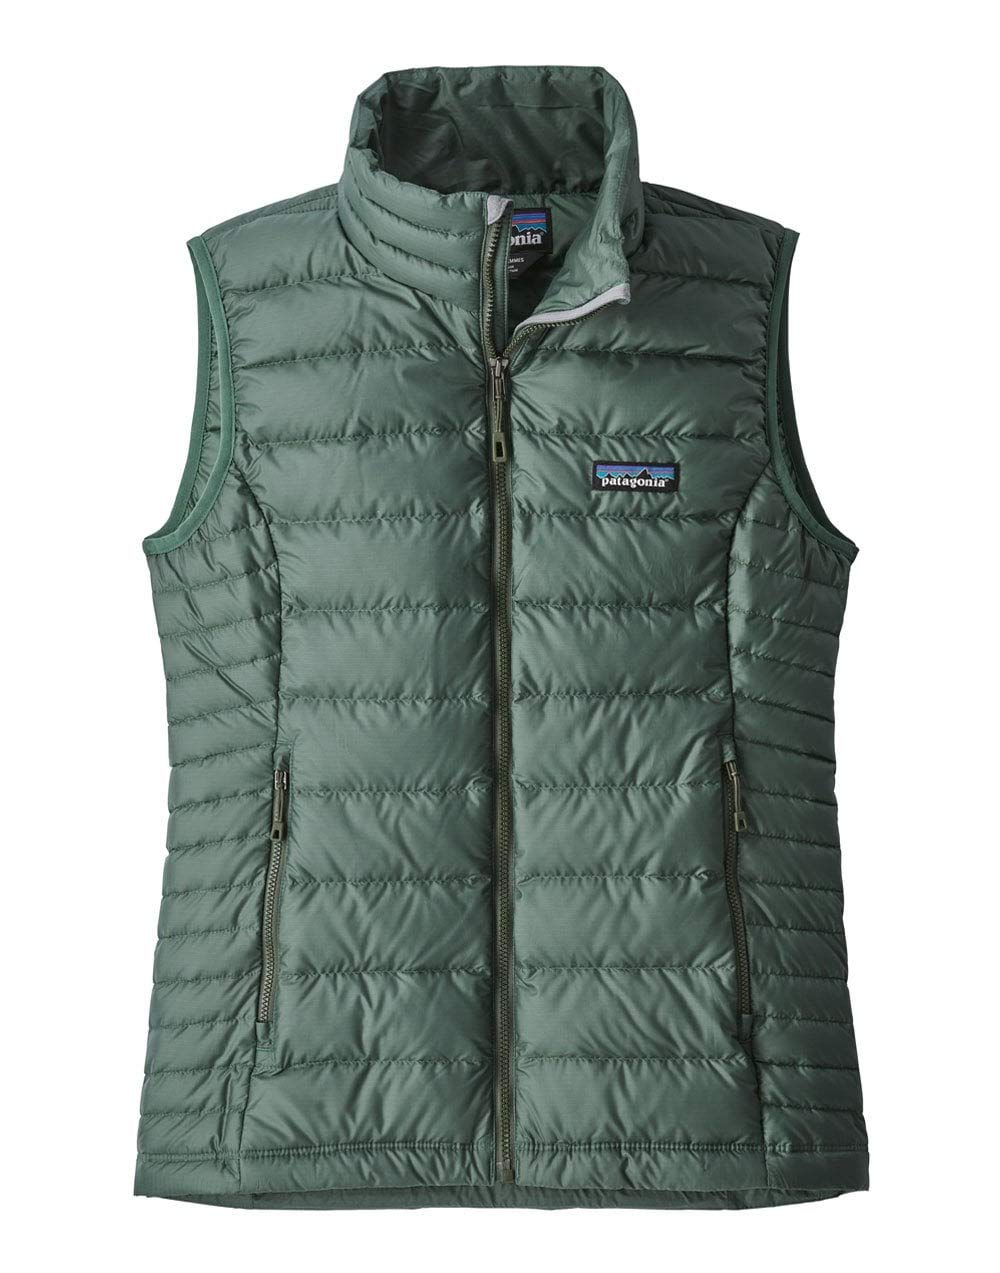 61gUByip1hL - Patagonia Women's Down Jacket